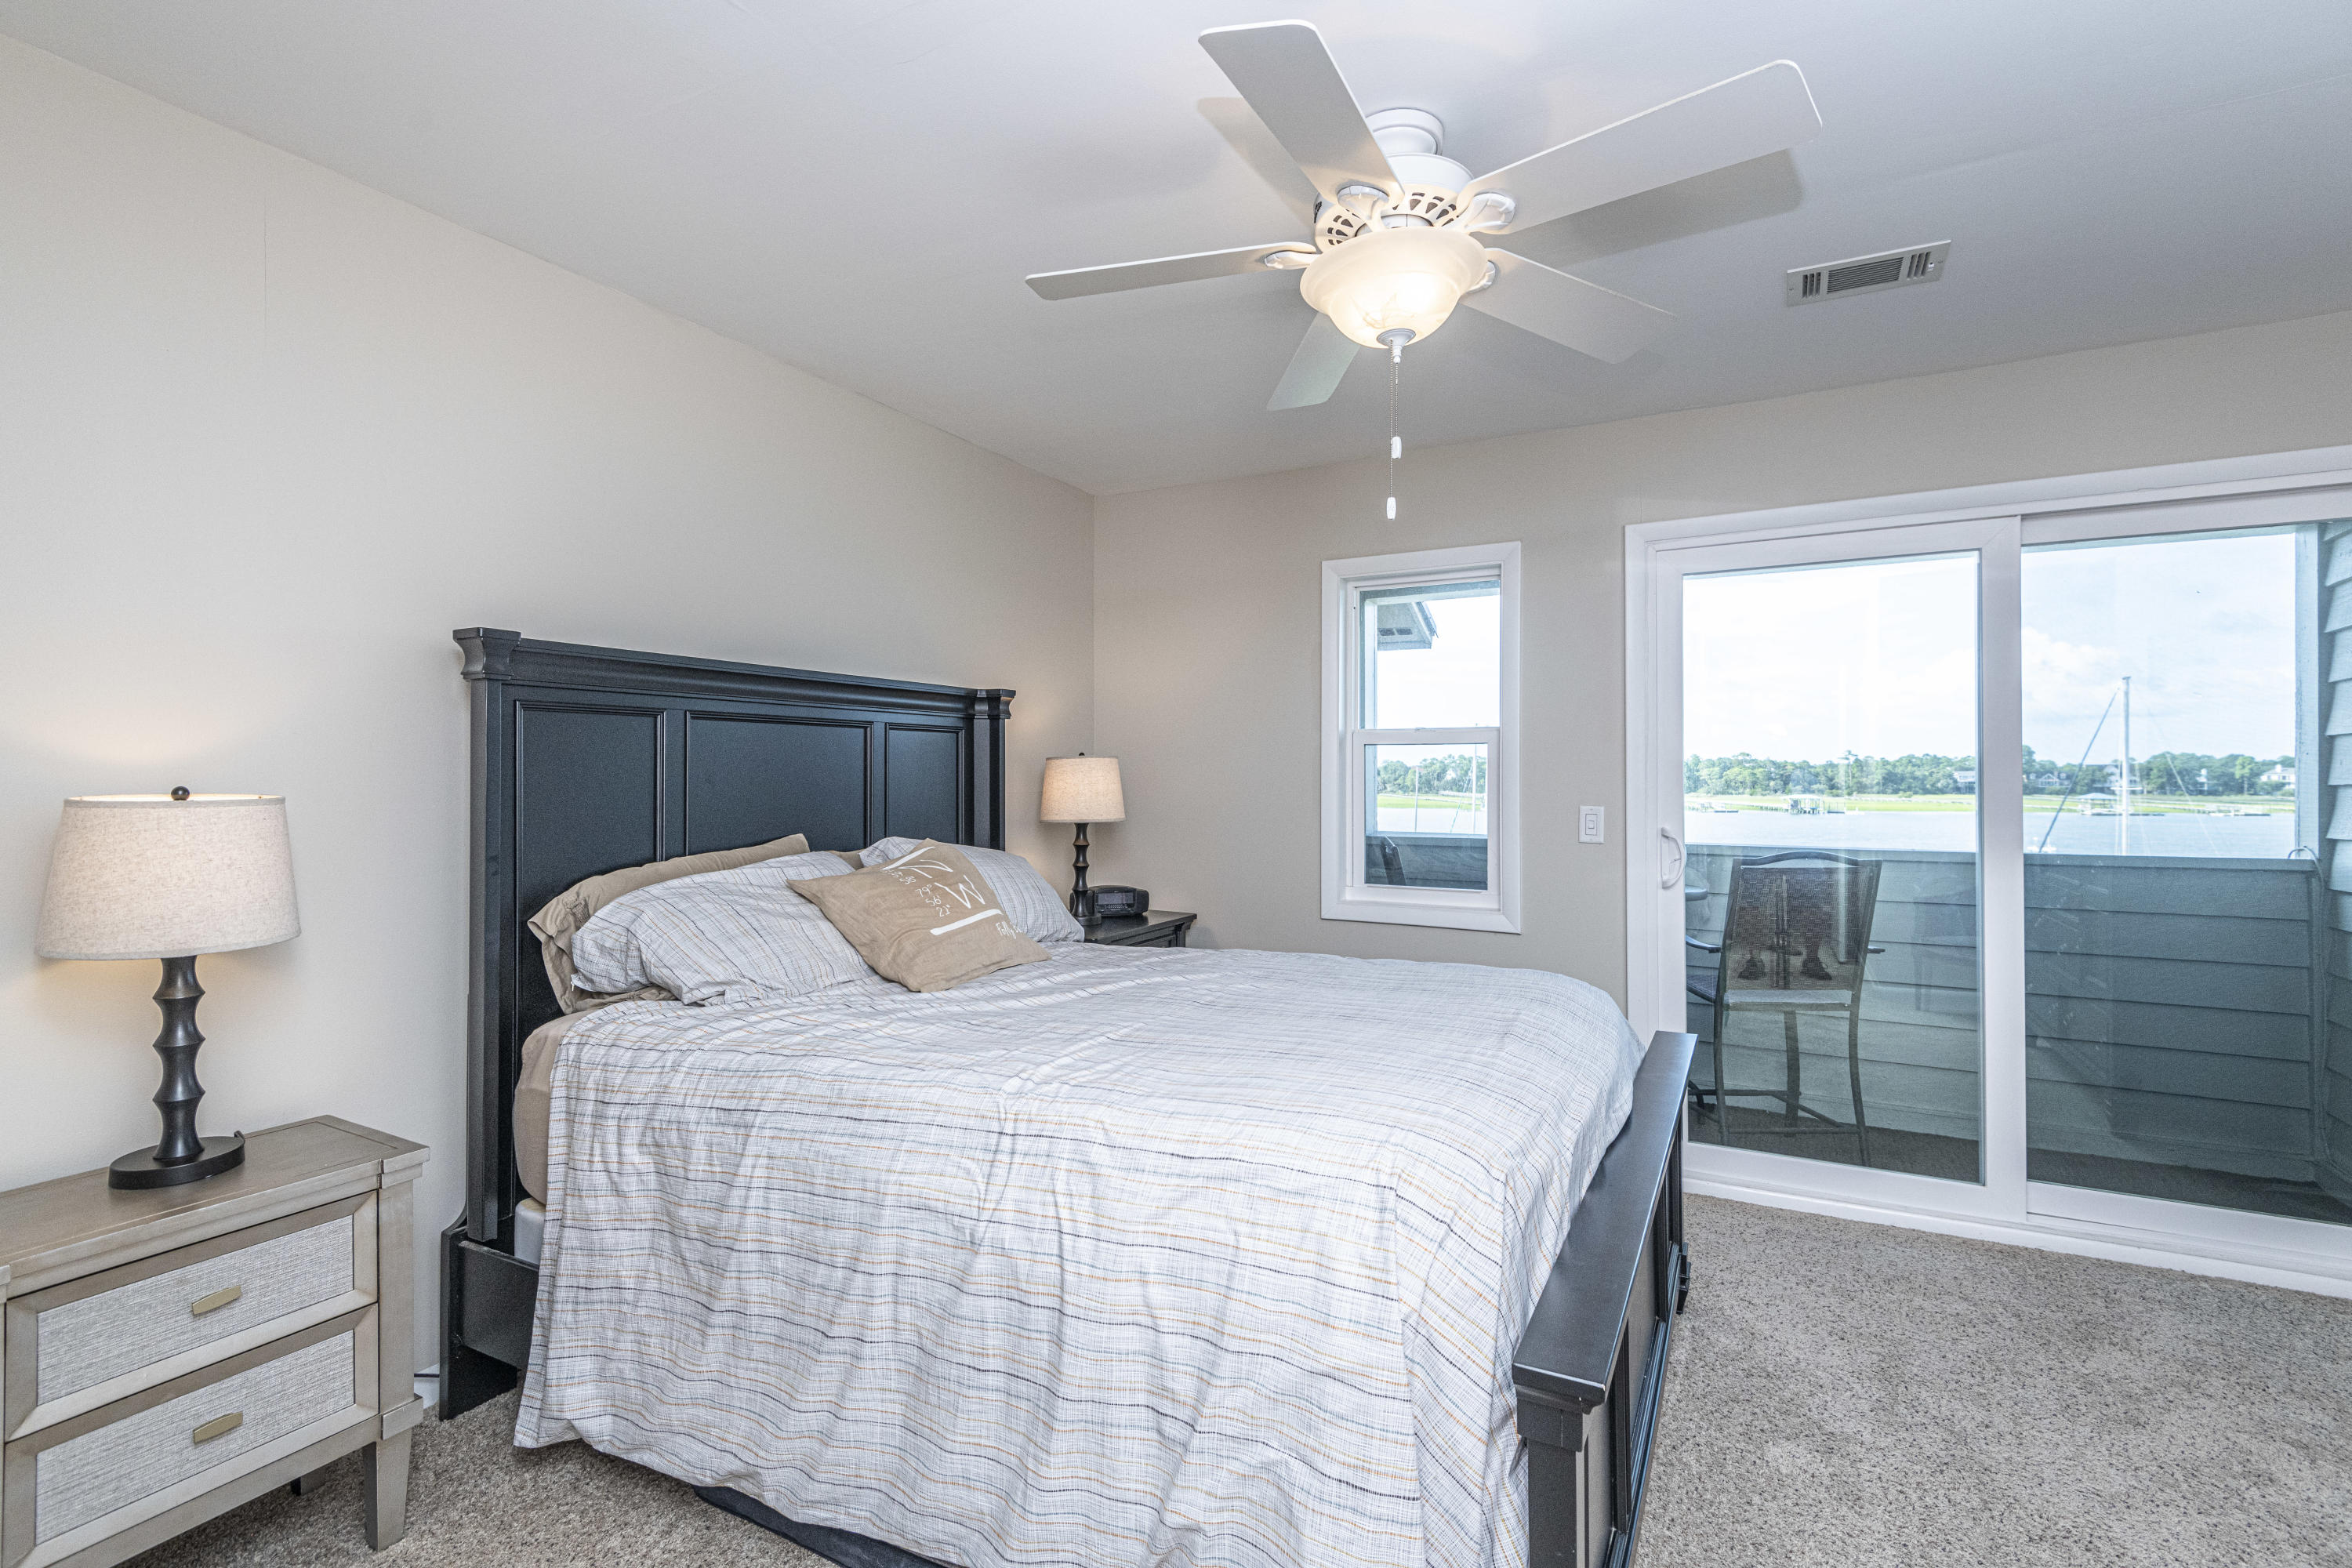 Mariners Cay Homes For Sale - 71 Mariners Cay, Folly Beach, SC - 37